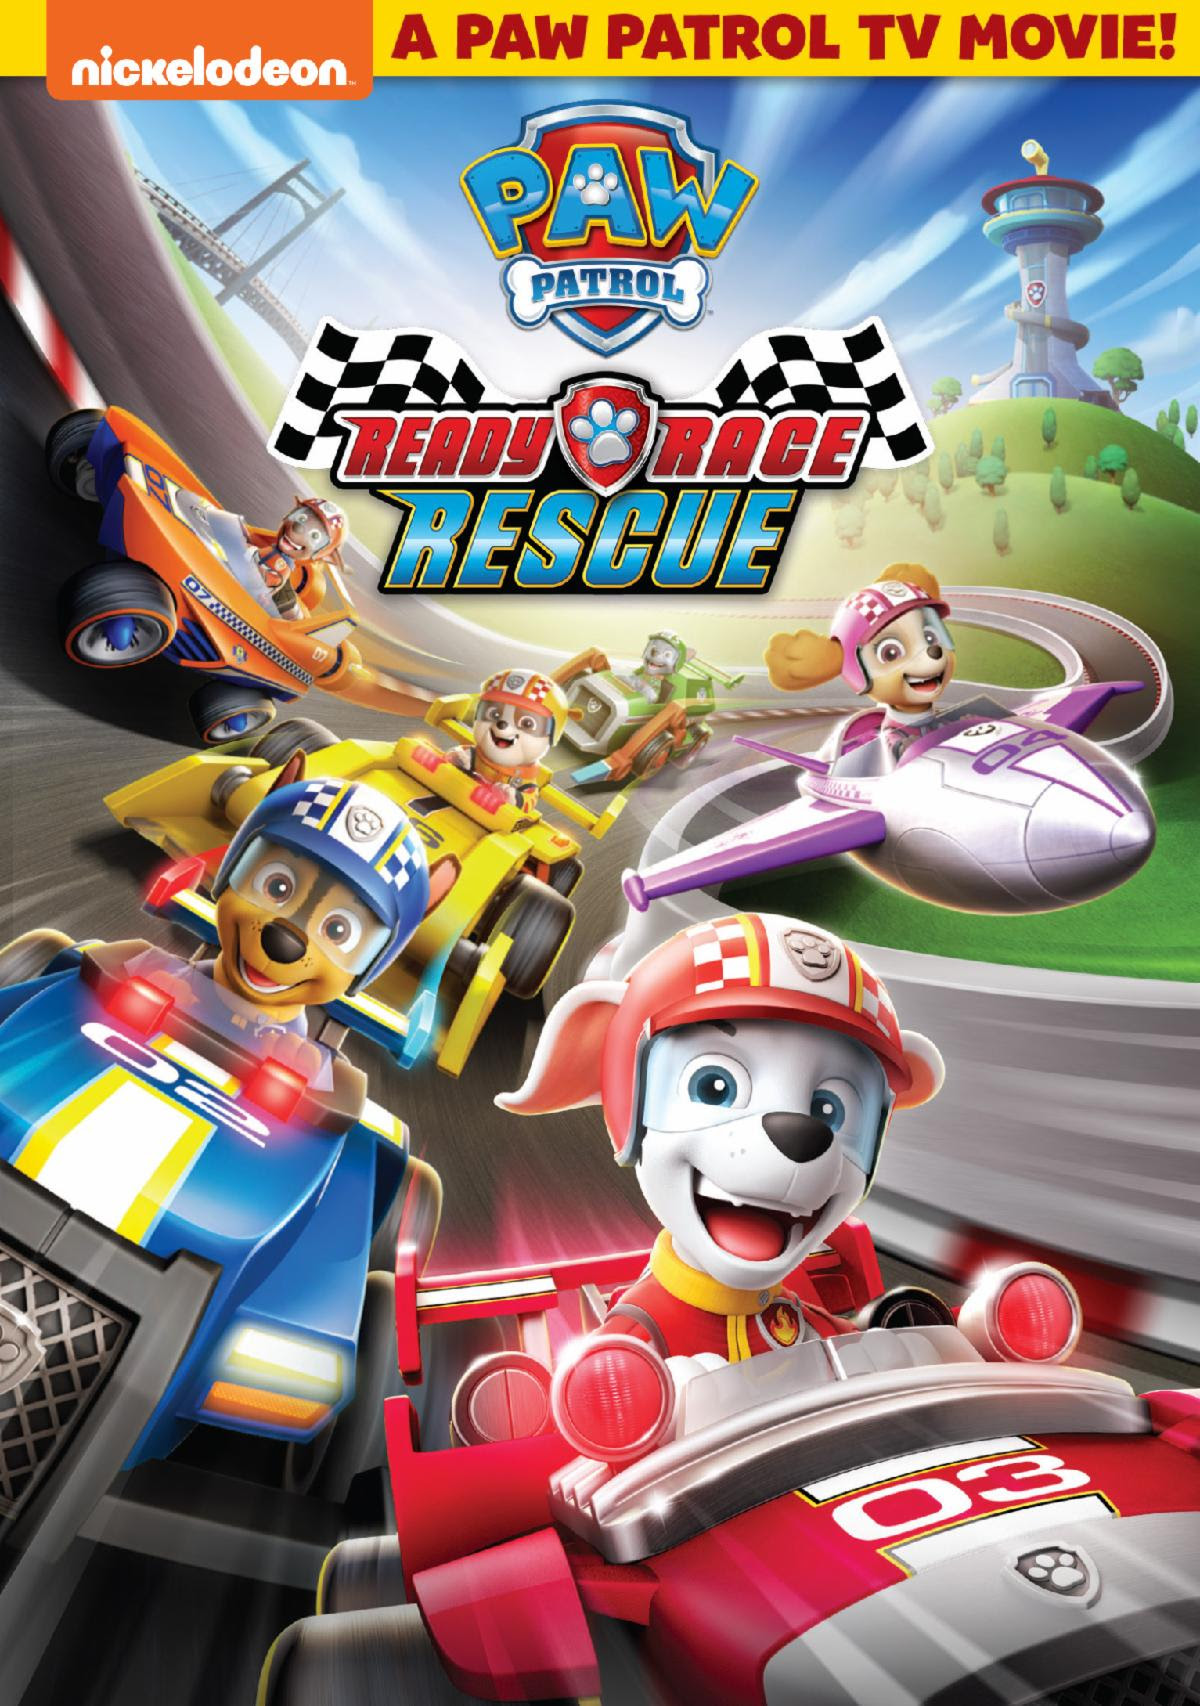 PAW Patrol: Ready, Race, Rescue Exclusively at Wal-Mart September 3